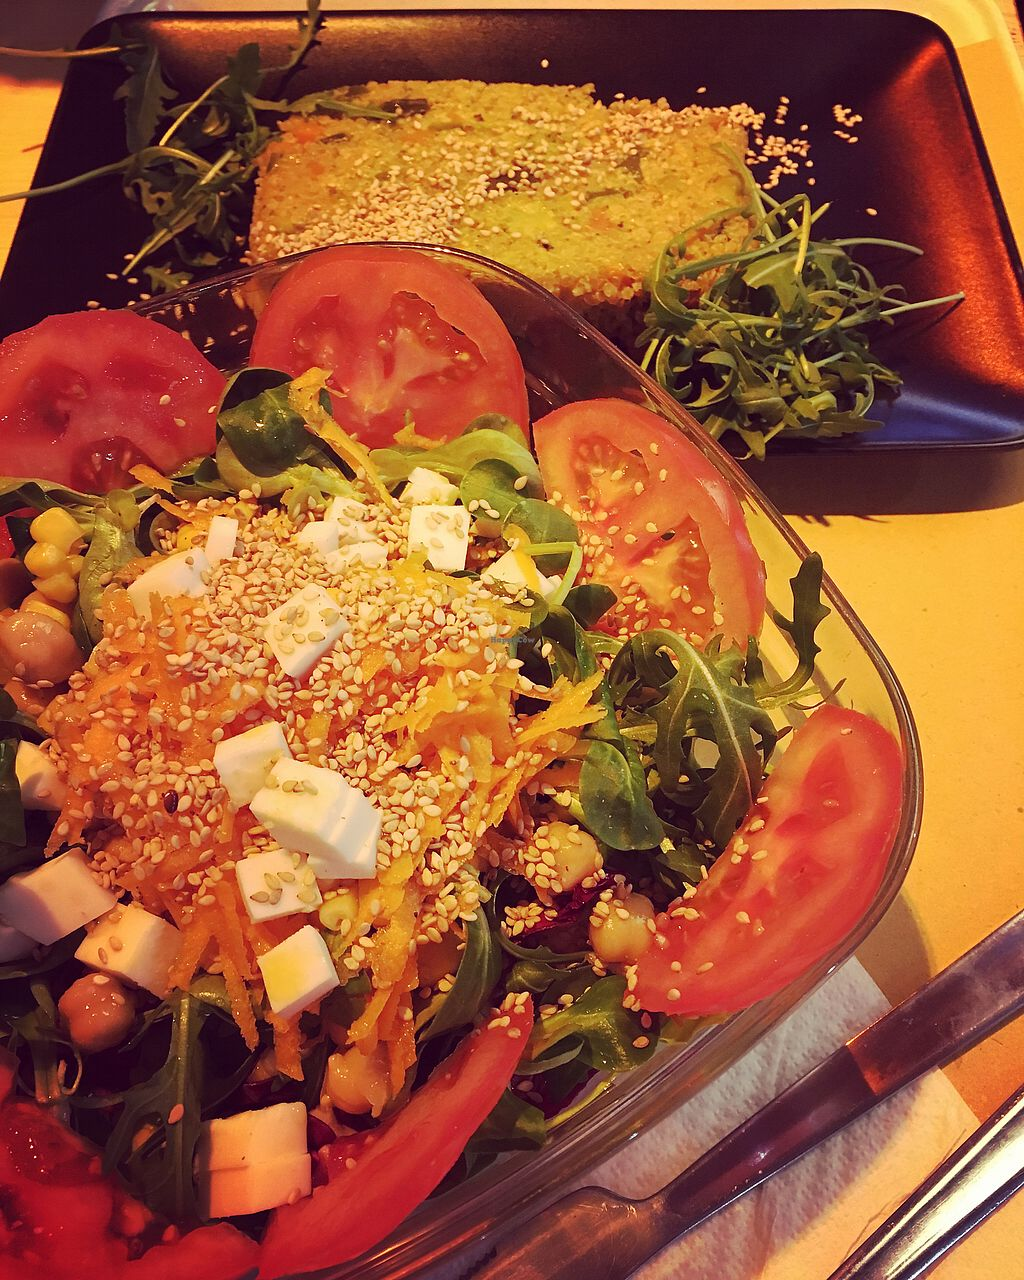 """Photo of Il Vegano - Firenze  by <a href=""""/members/profile/suzyseraphina"""">suzyseraphina</a> <br/>Lunch stop with warm quinoa salad <br/> March 23, 2018  - <a href='/contact/abuse/image/54089/375005'>Report</a>"""